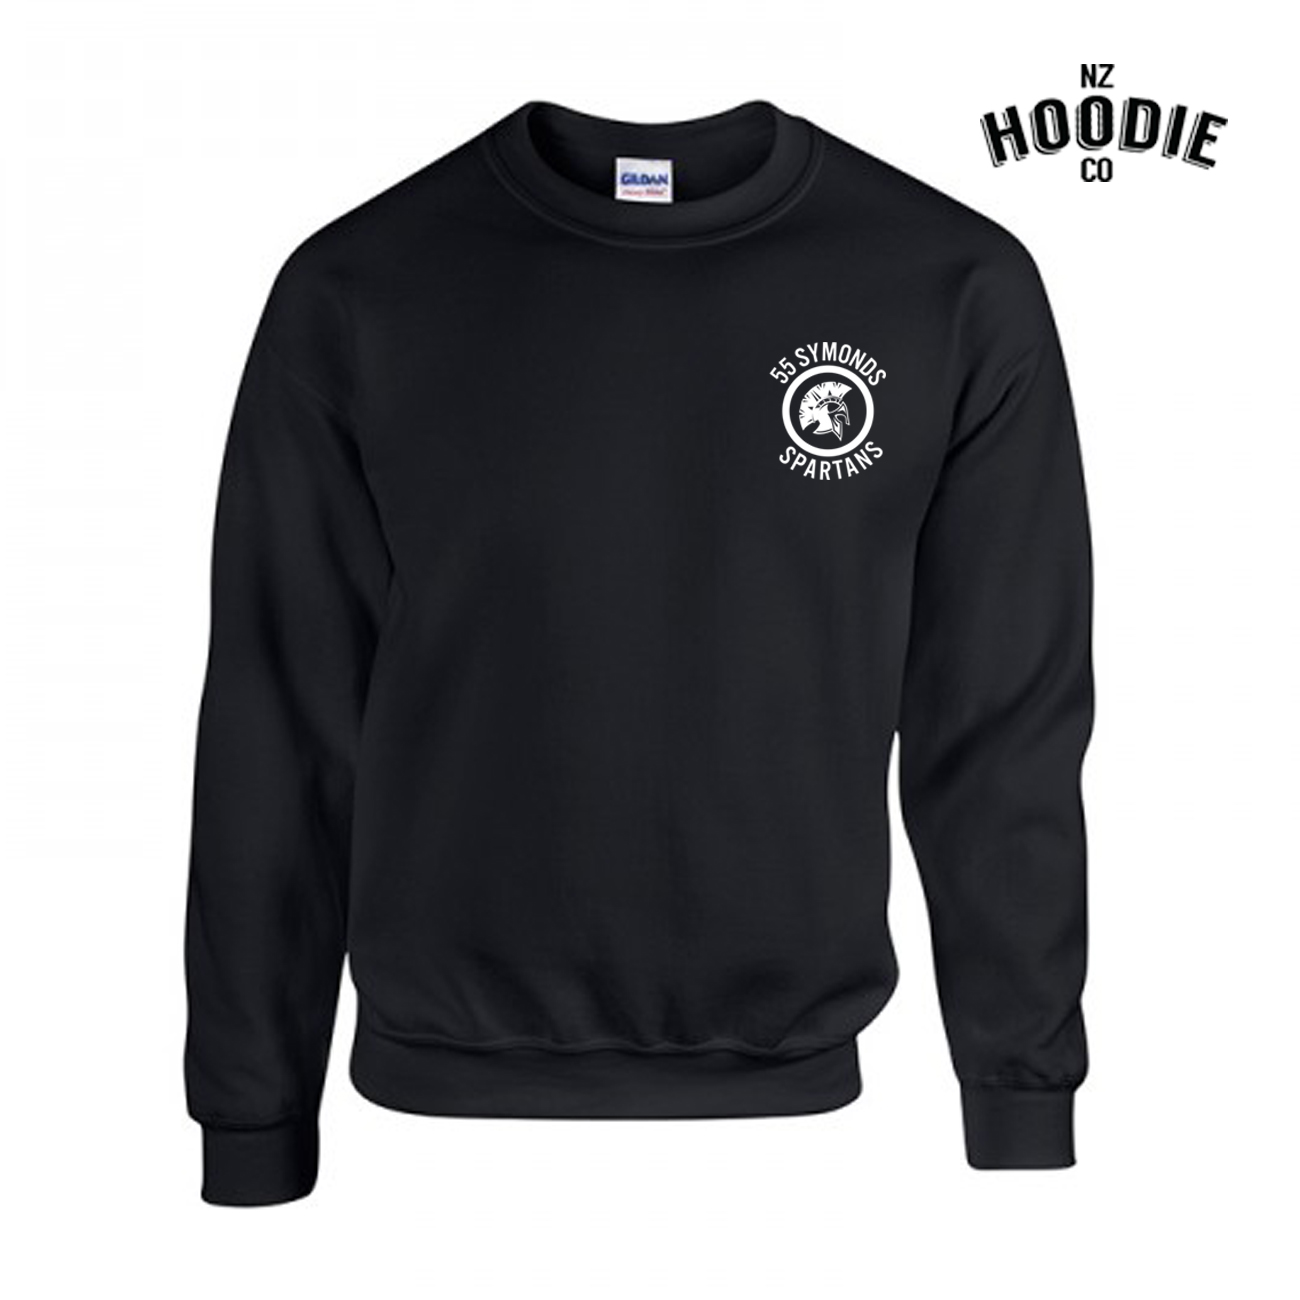 55 Symonds Black Gilden Neck Crew FRONT.jpg